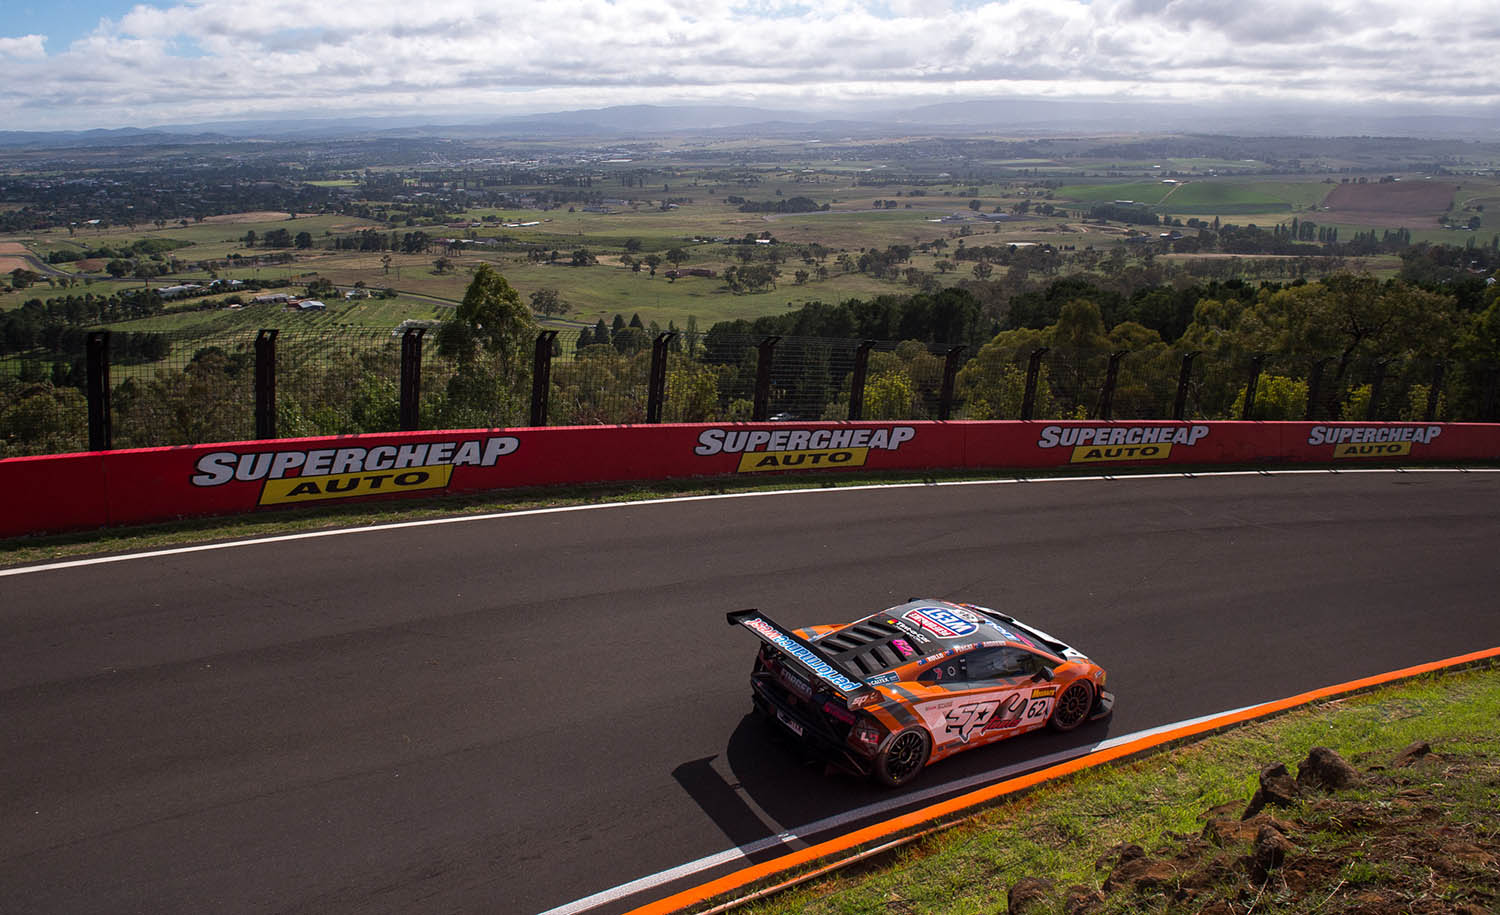 Scott Andrews' Performance West SP Tools Lamborghini Gallardo will start from 14th place on the grid in the 2016 Liqui Moly Bathurst 12 Hour race, after qualifying today. PIC BY: Daniel Kalisz